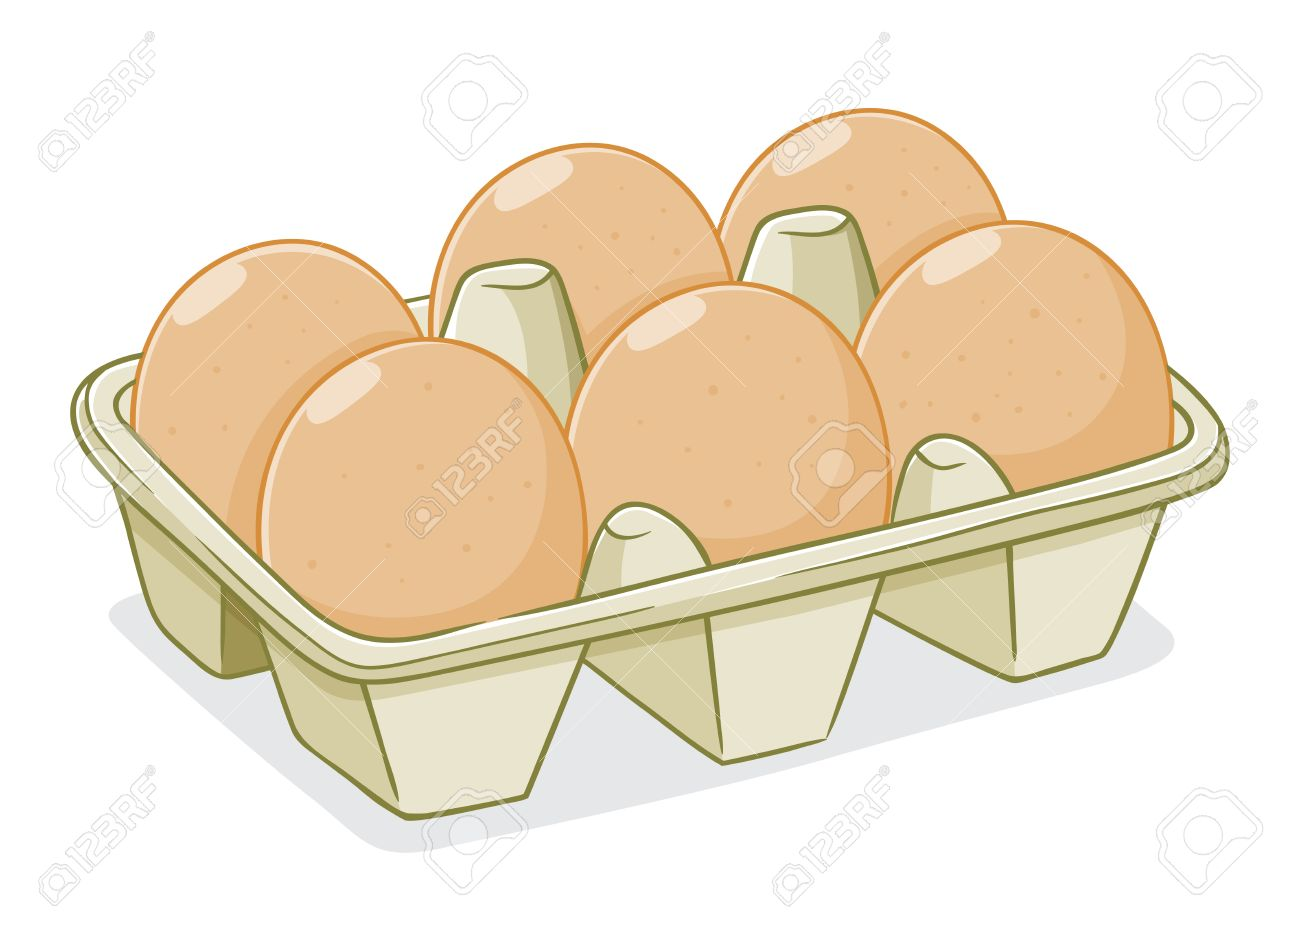 eggs in a carton box hand drawing vector illustration royalty free rh 123rf com eggs clipart no white background eggs clipart panda